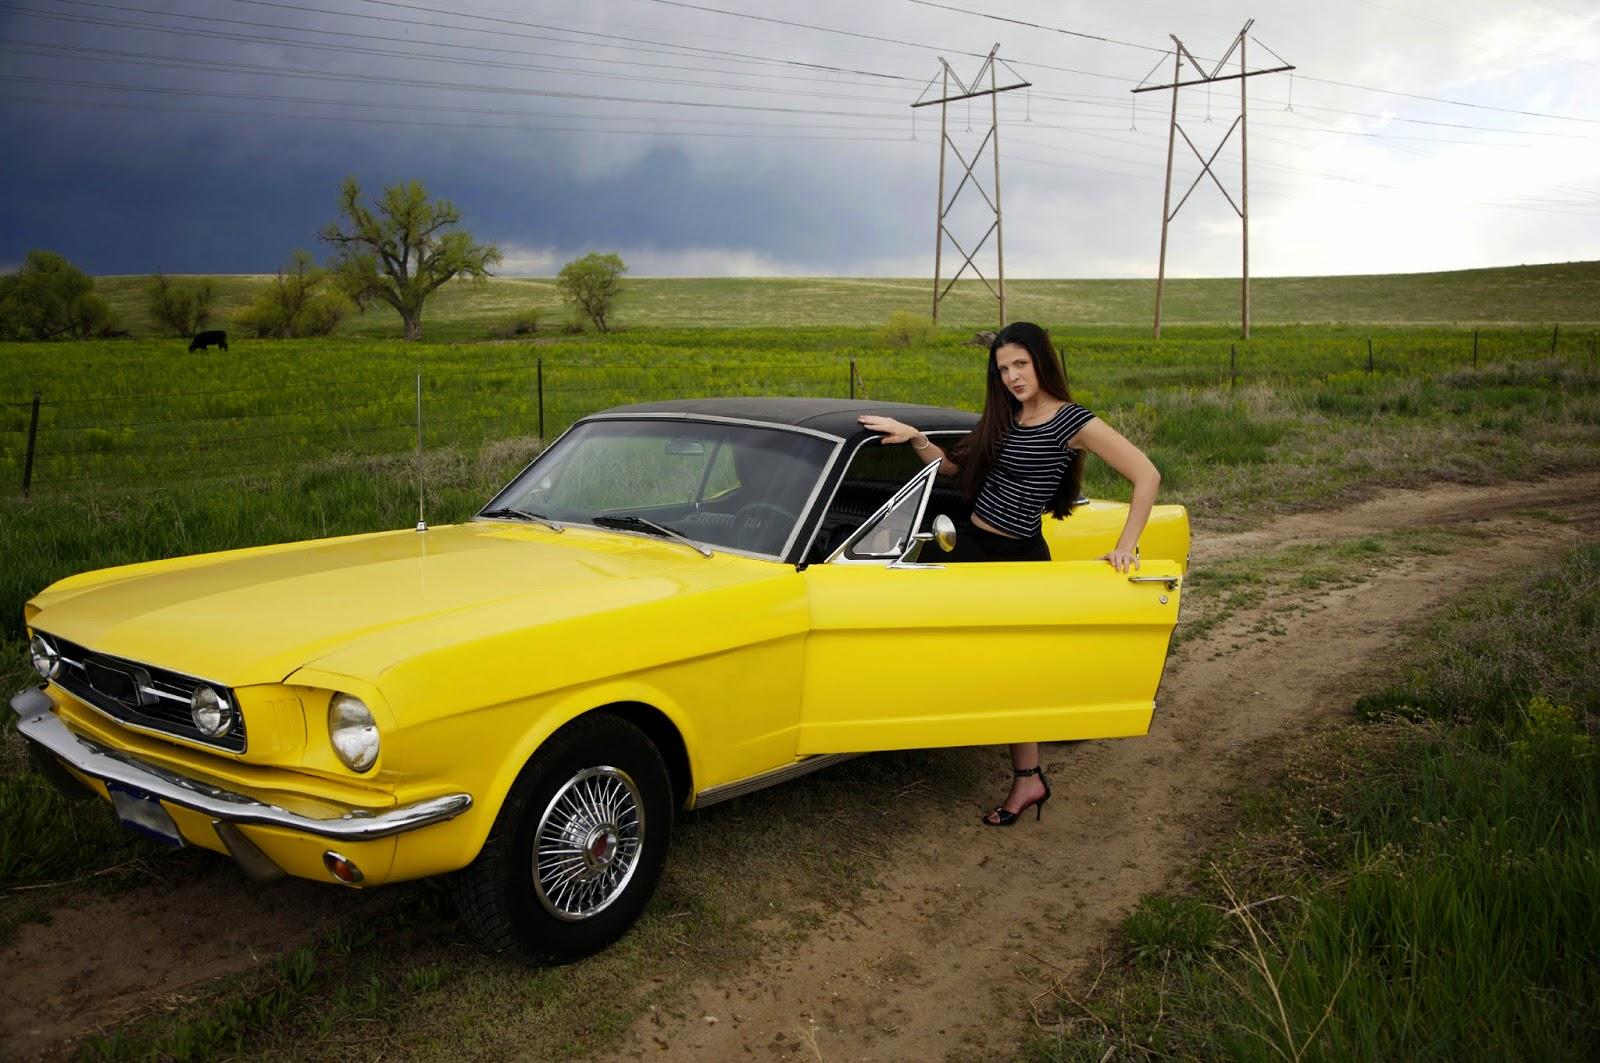 Crown victoria wheel alignment ebook 80 off gallery free ebooks the global small business blog january 2015 today in global small business the ford mustang is fandeluxe Images